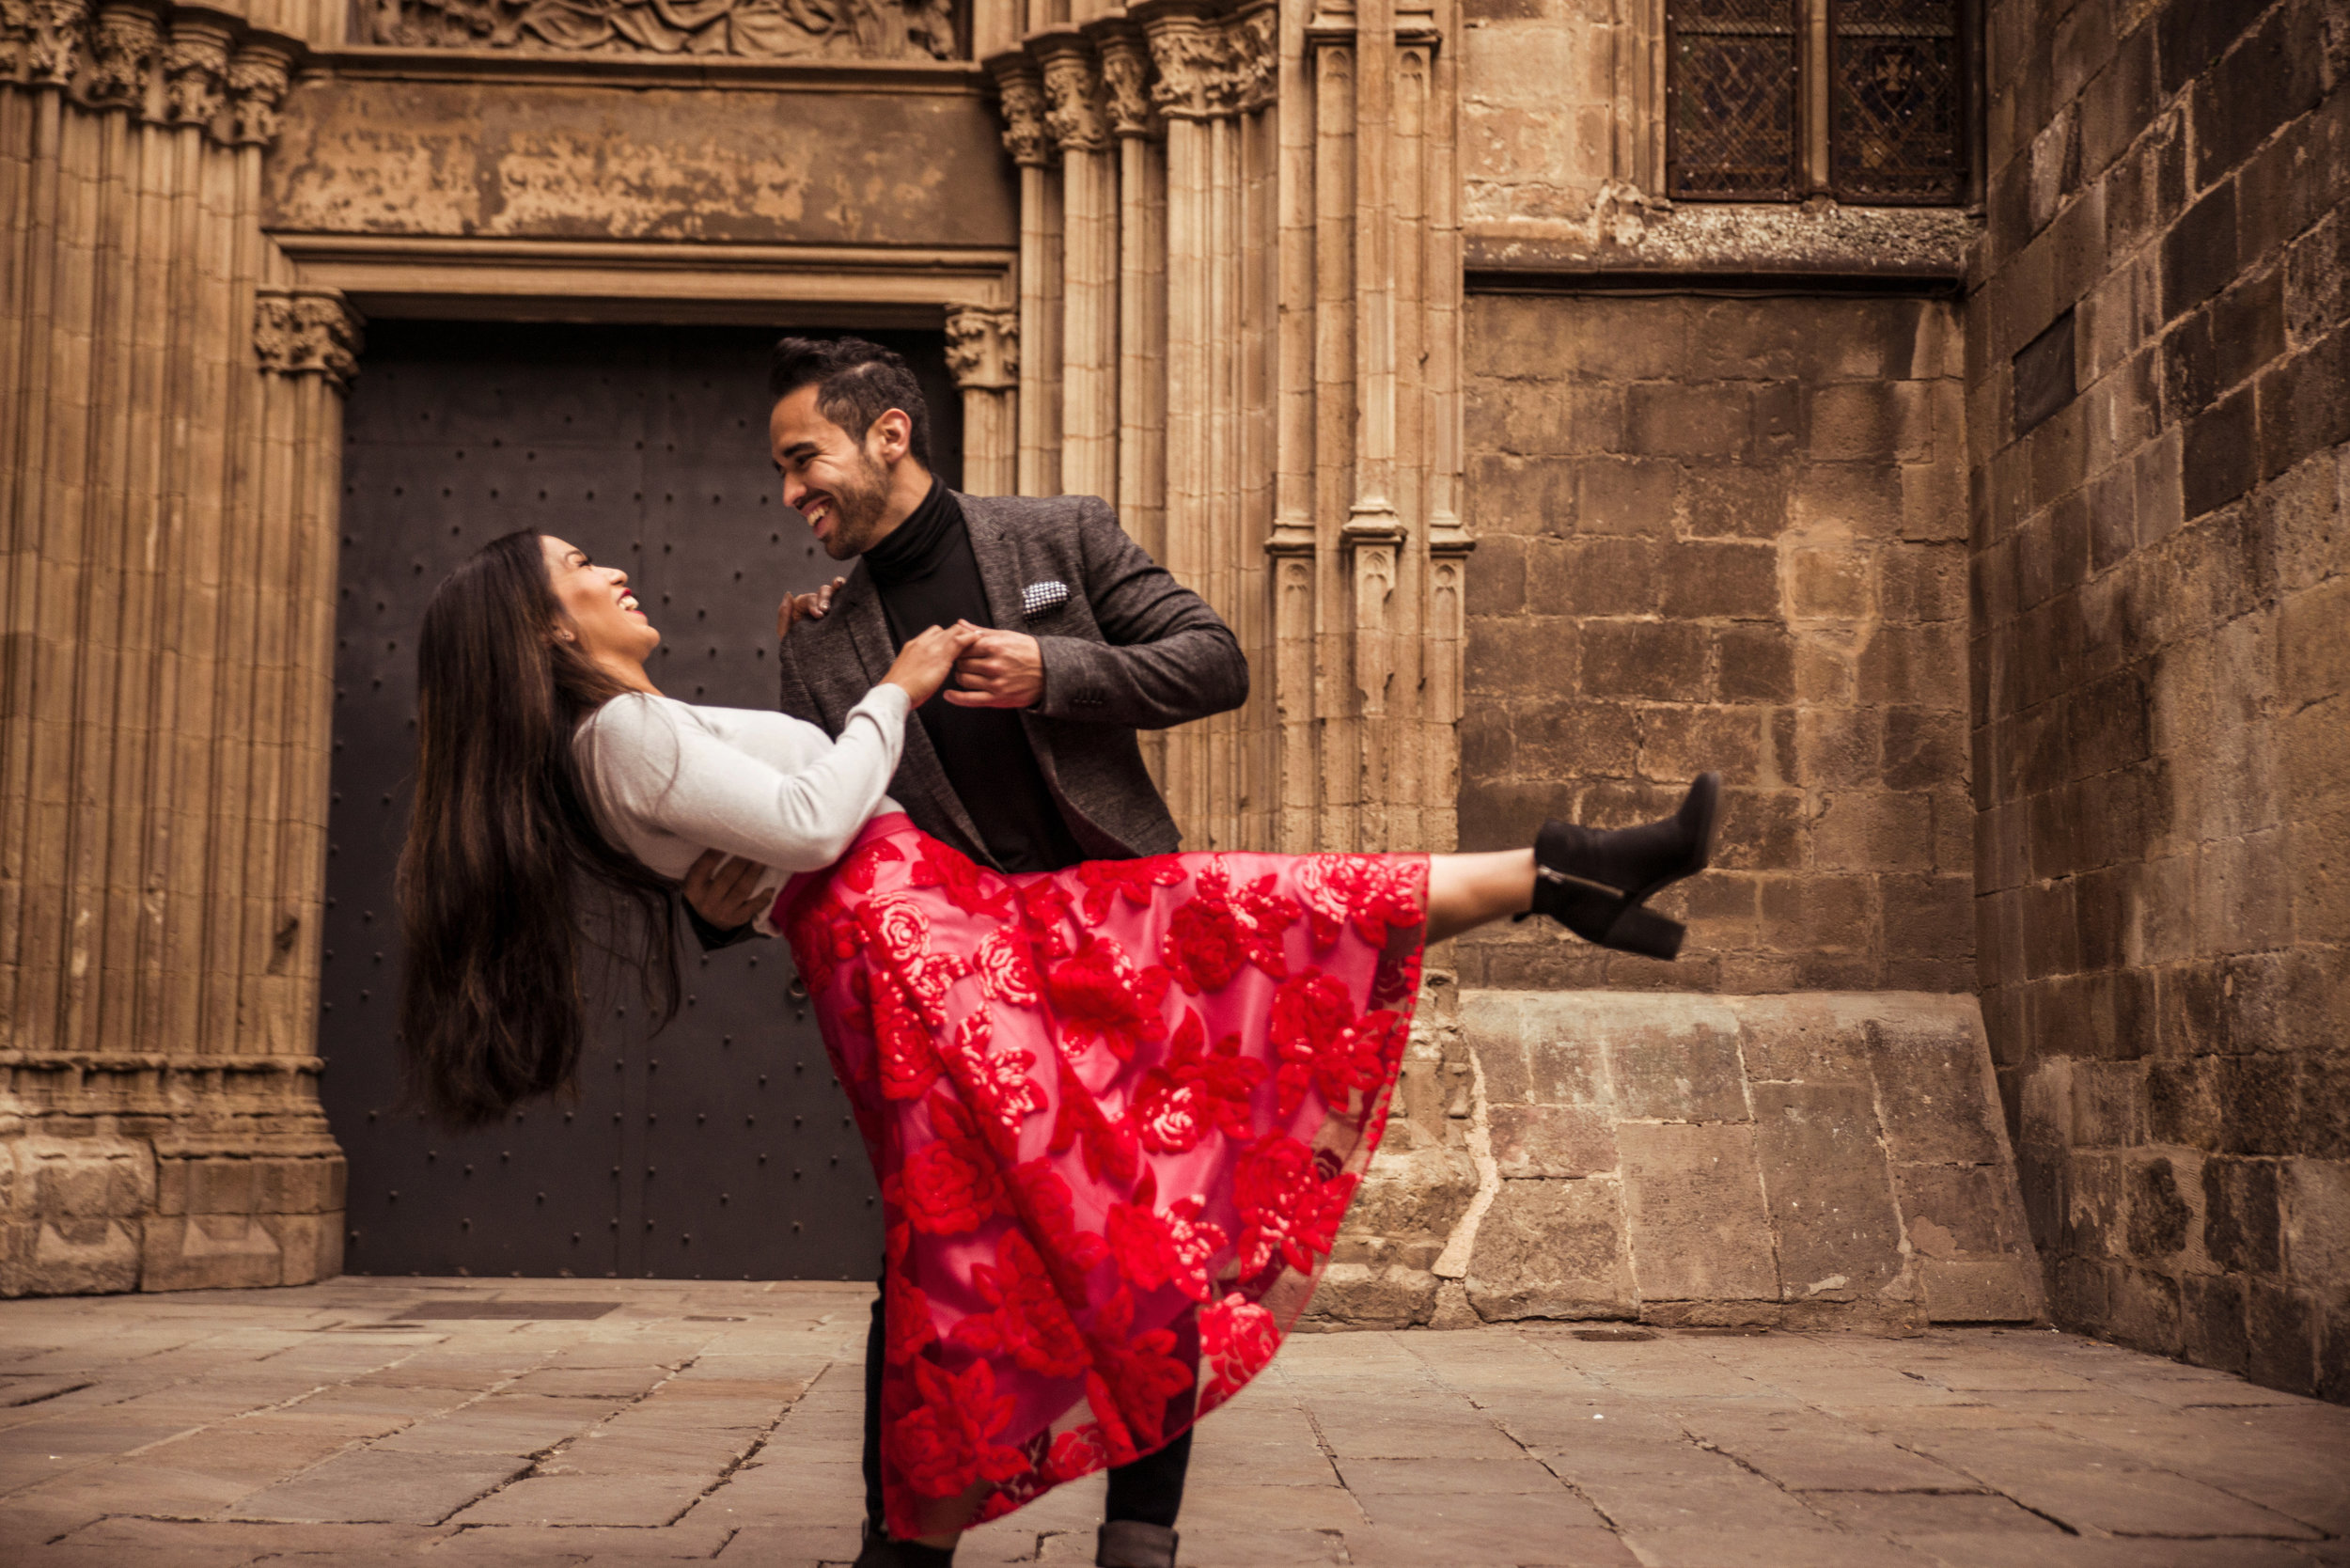 Photo by: Shoot My Travel Photographer Caitlin in Barcelona